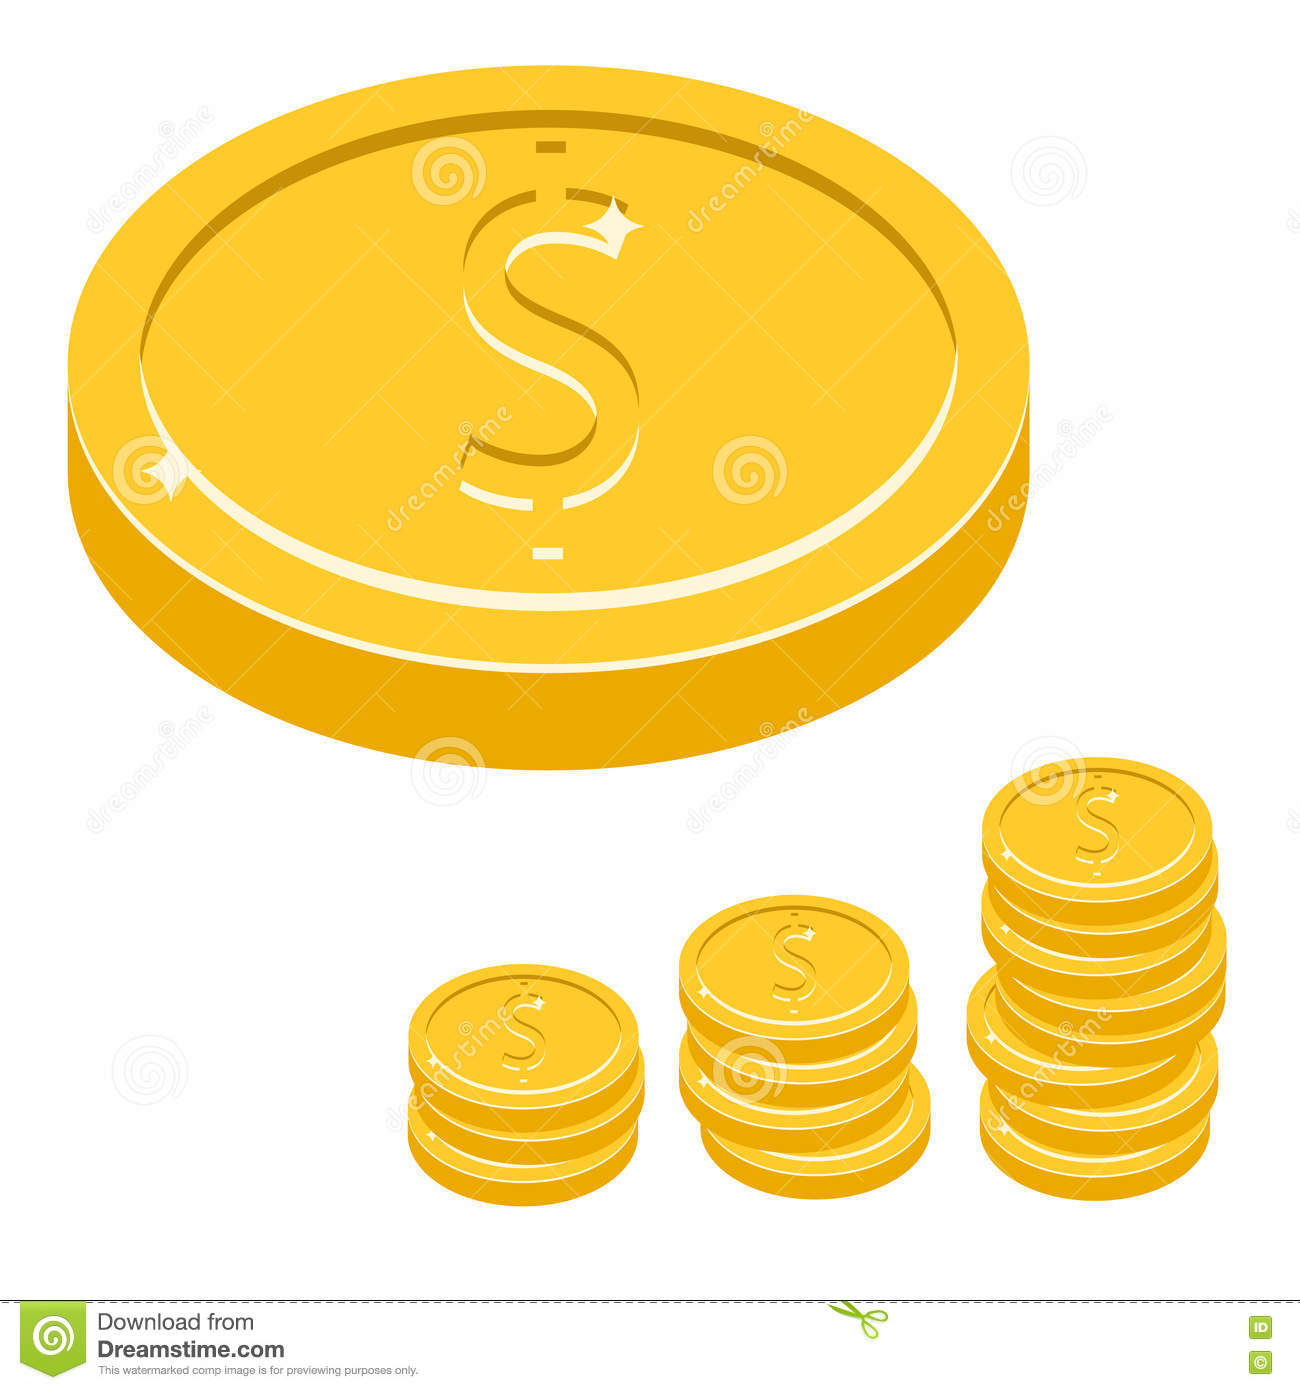 Dollar Coin Vector Icon Illustration. Gold Metal Money Stack.